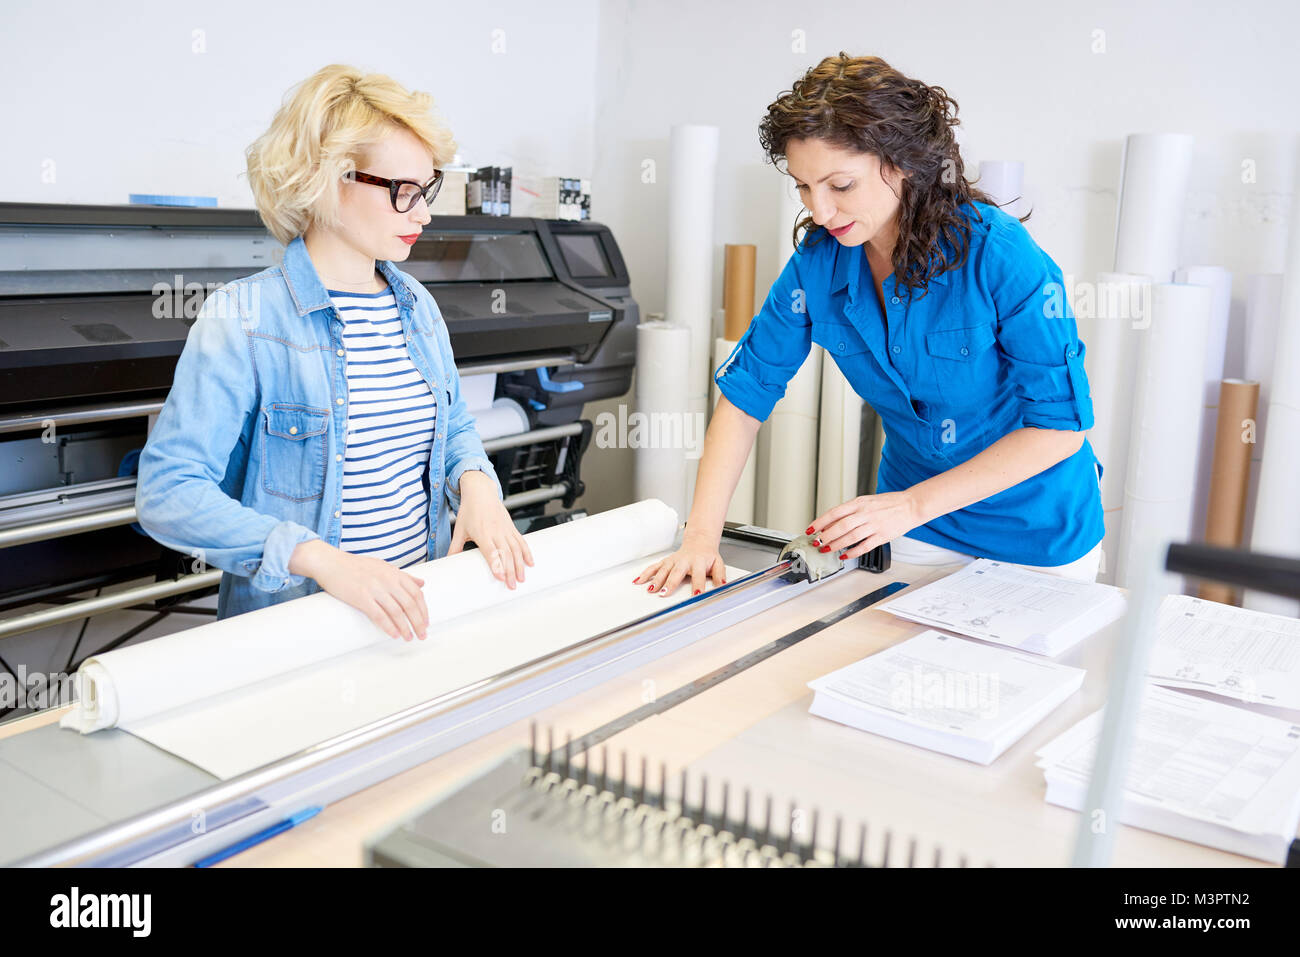 Women Cutting Paper in Printing Shop - Stock Image